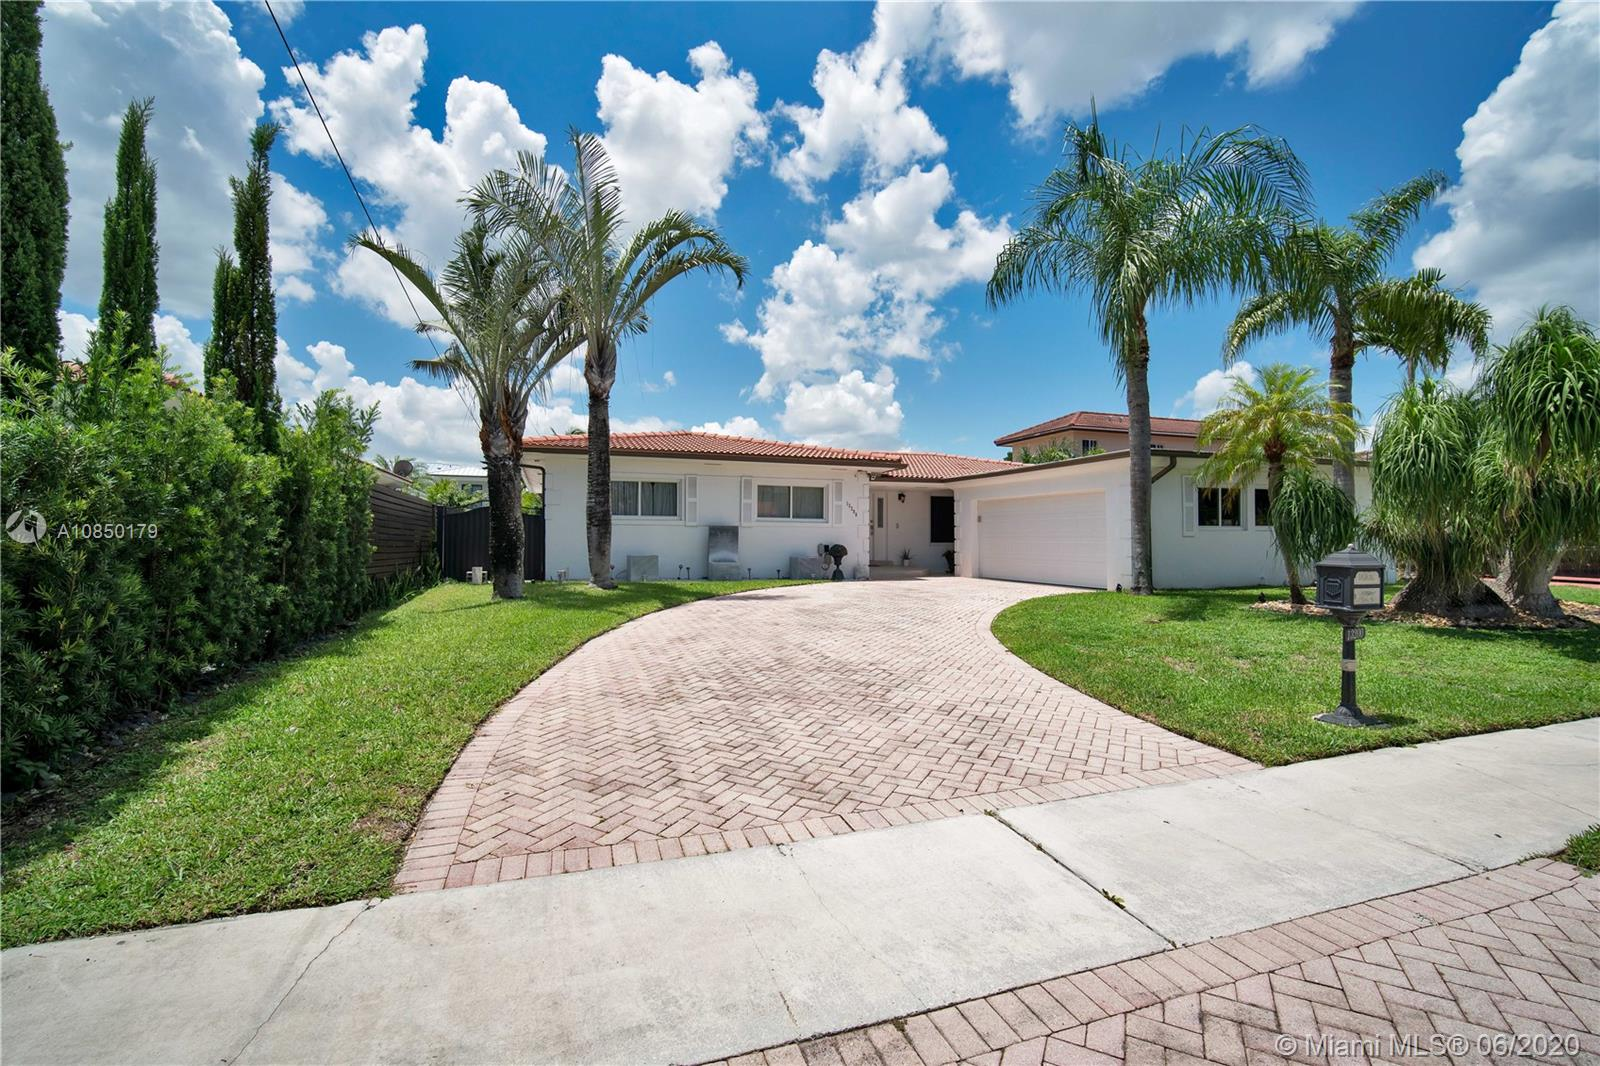 13200  Ortega Ln  For Sale A10850179, FL